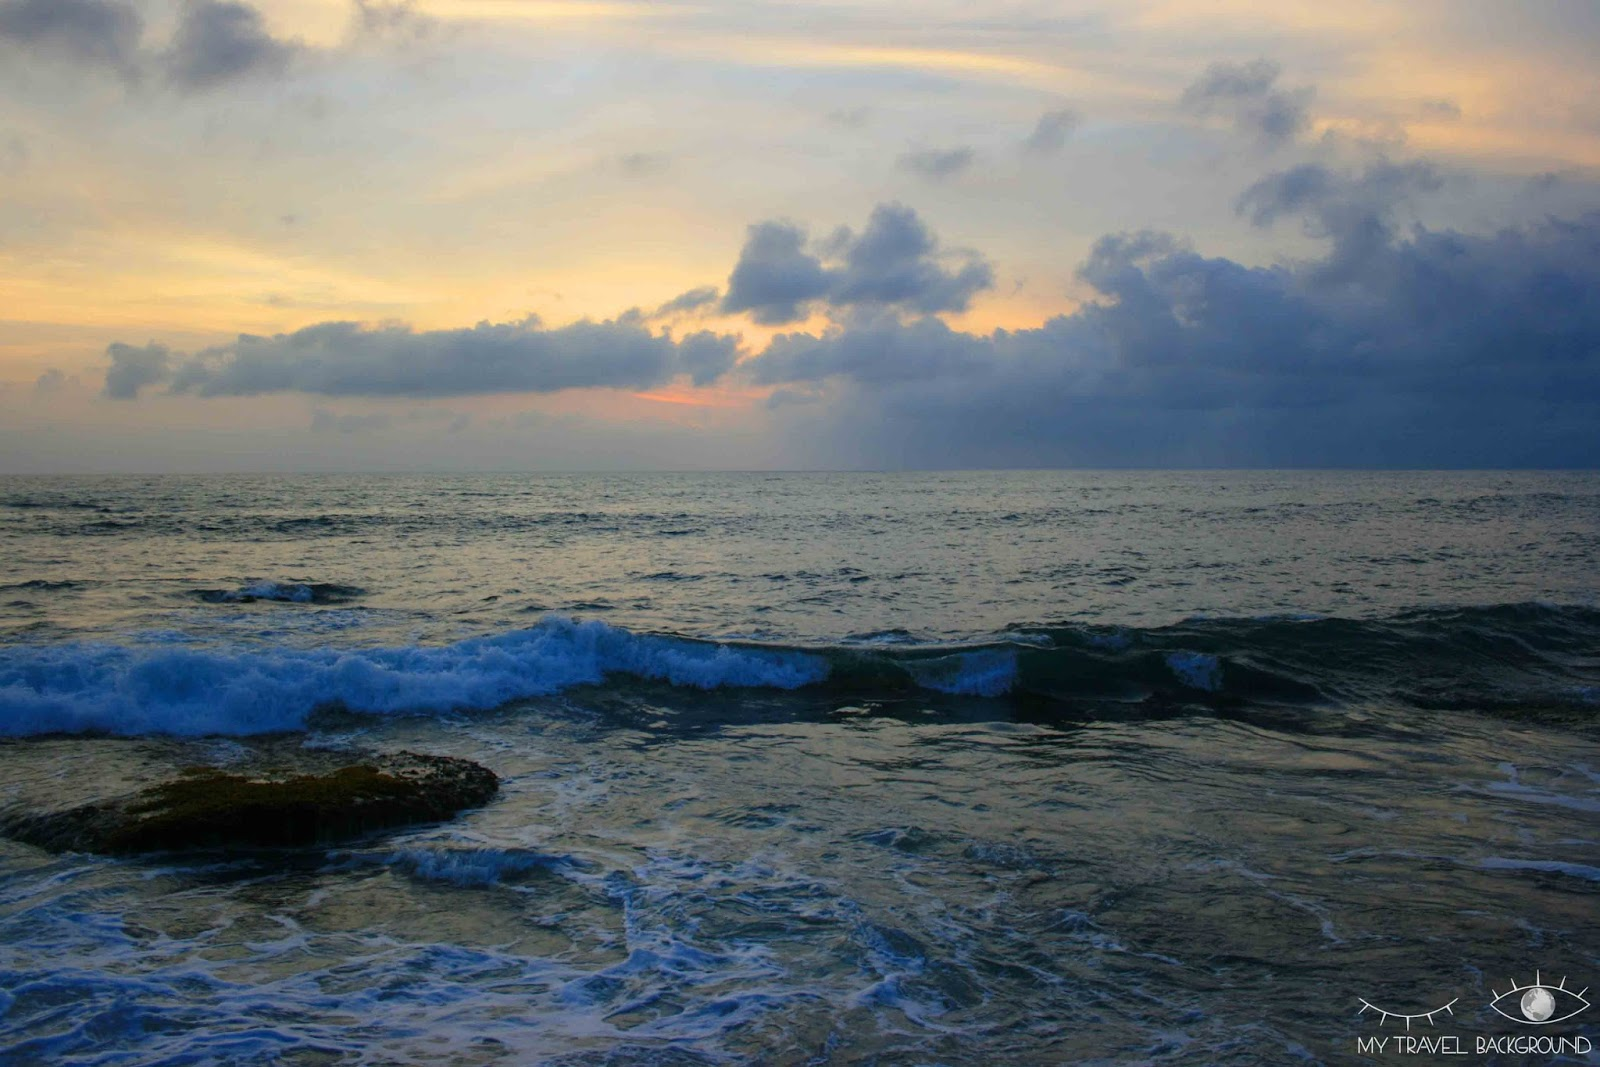 My Travel Background : A la découverte de Kuta et du Sud de Bali - Coucher de soleil à Tanah Lot